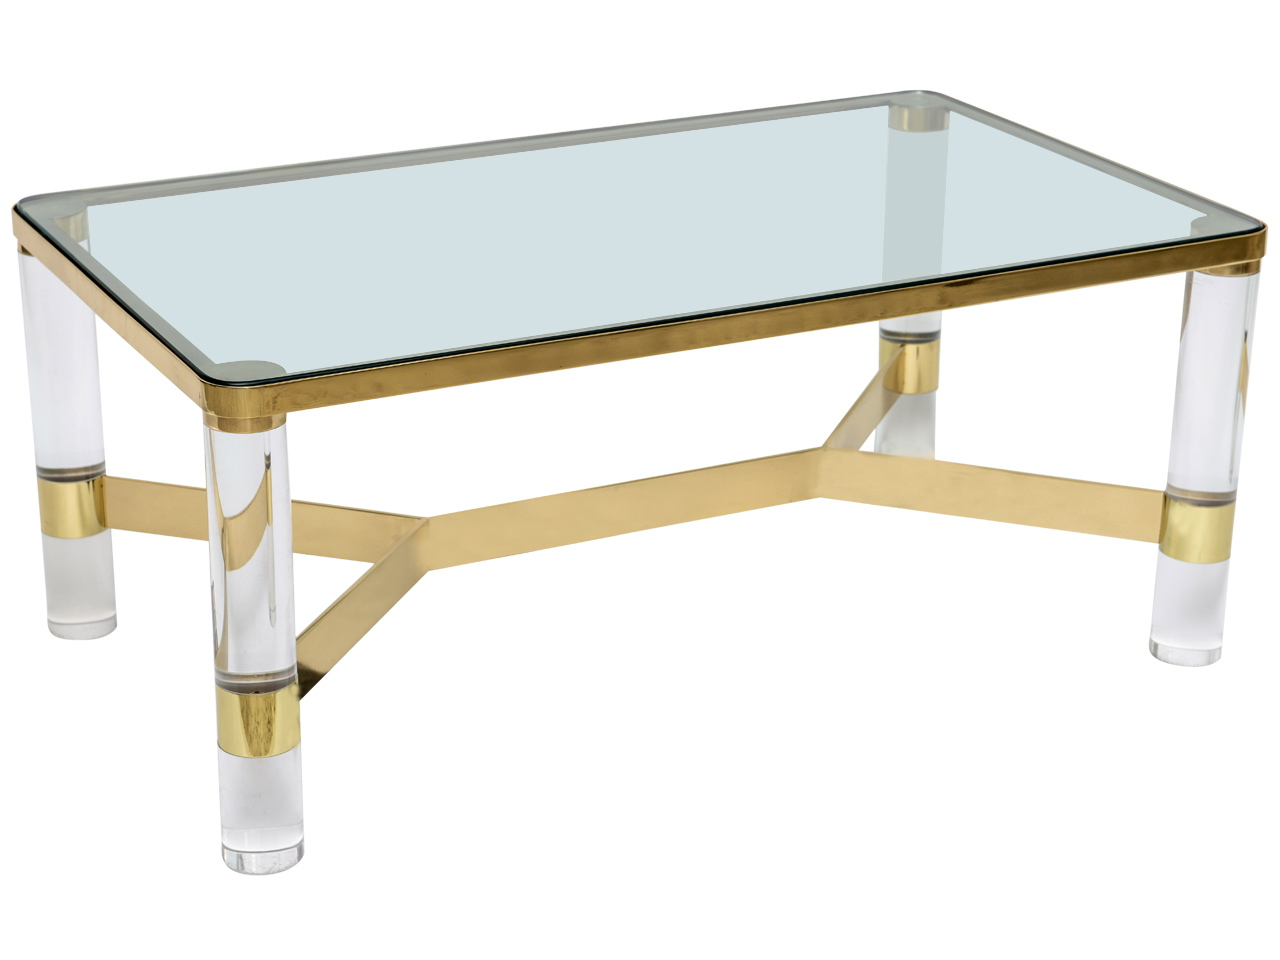 Lucite Coffee Table Ikea With Unique Gold Base